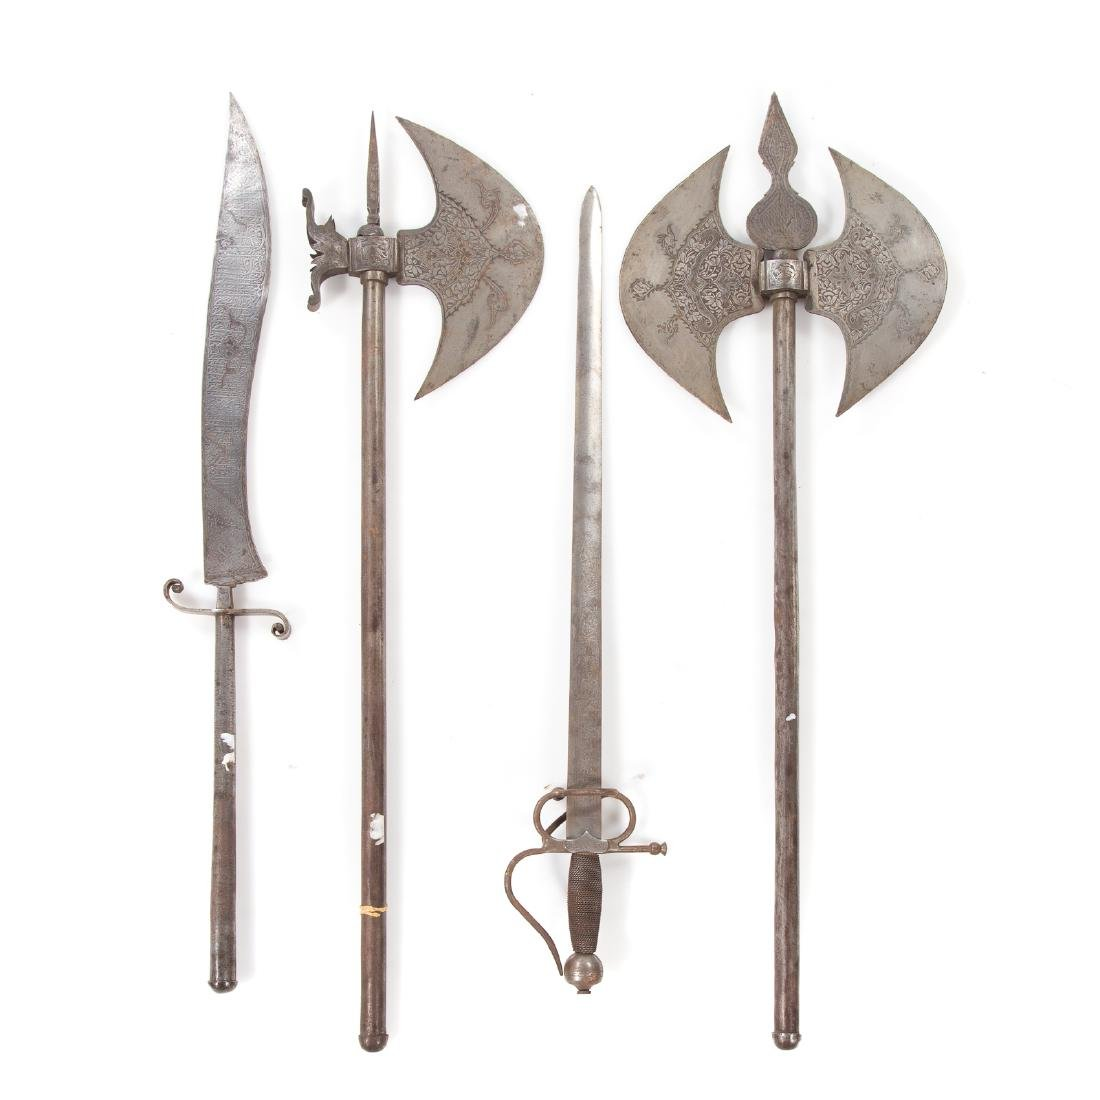 Four medieval and baroque style hand weapons